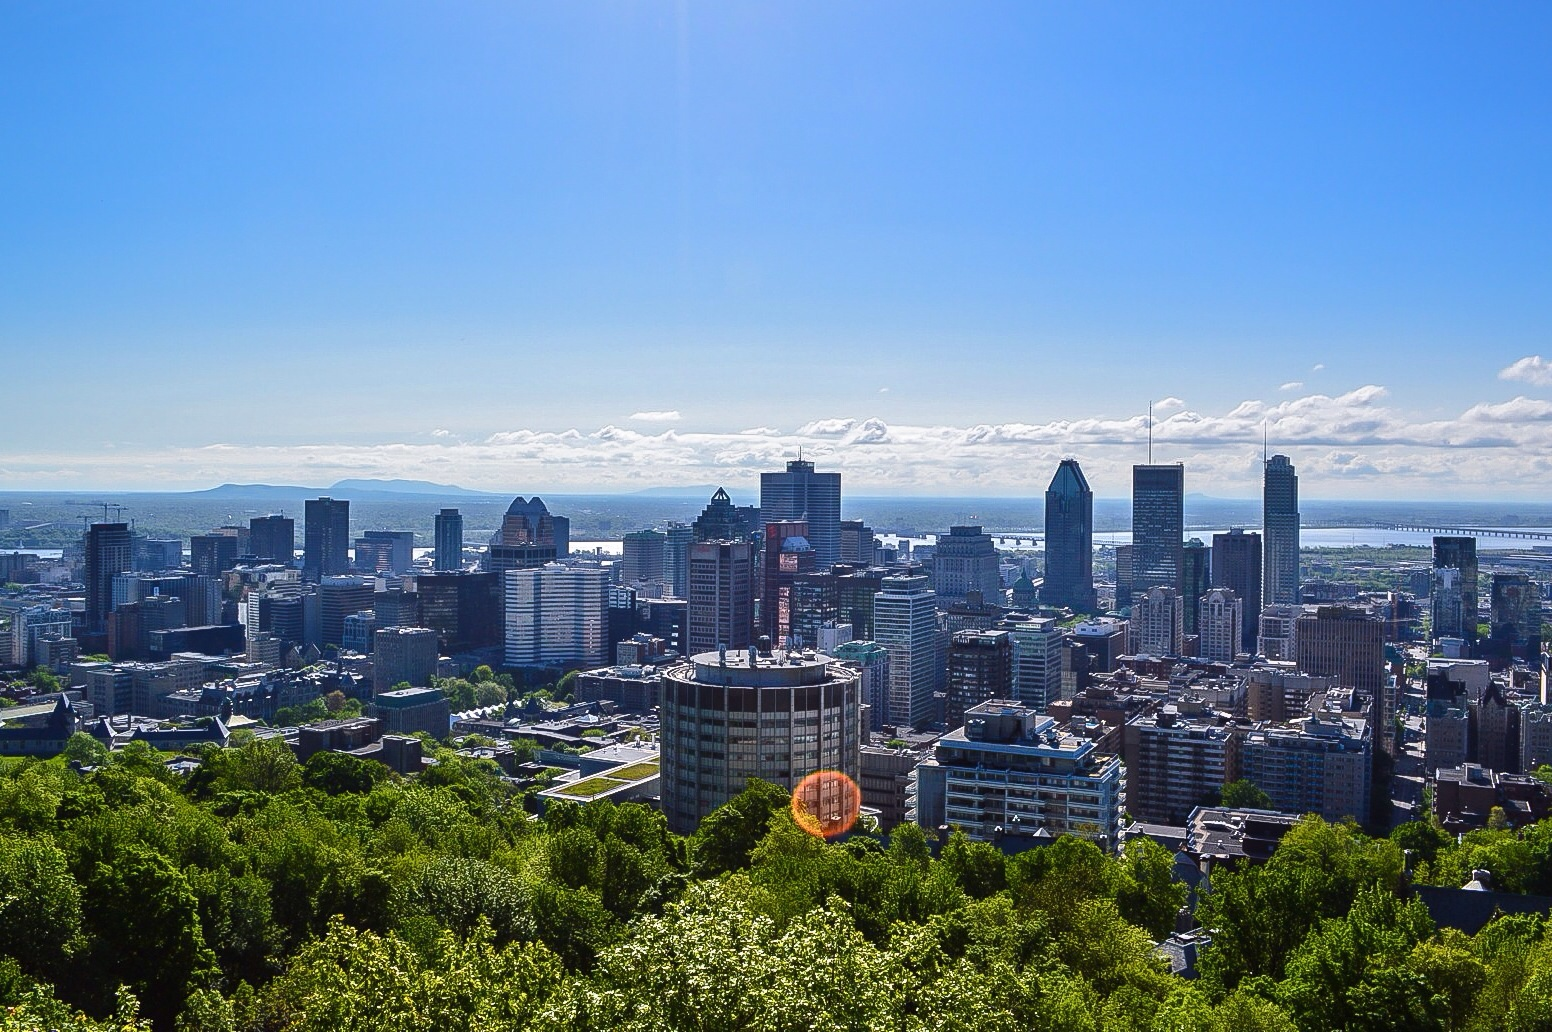 The spectacular view from the top of Mont-Royal.